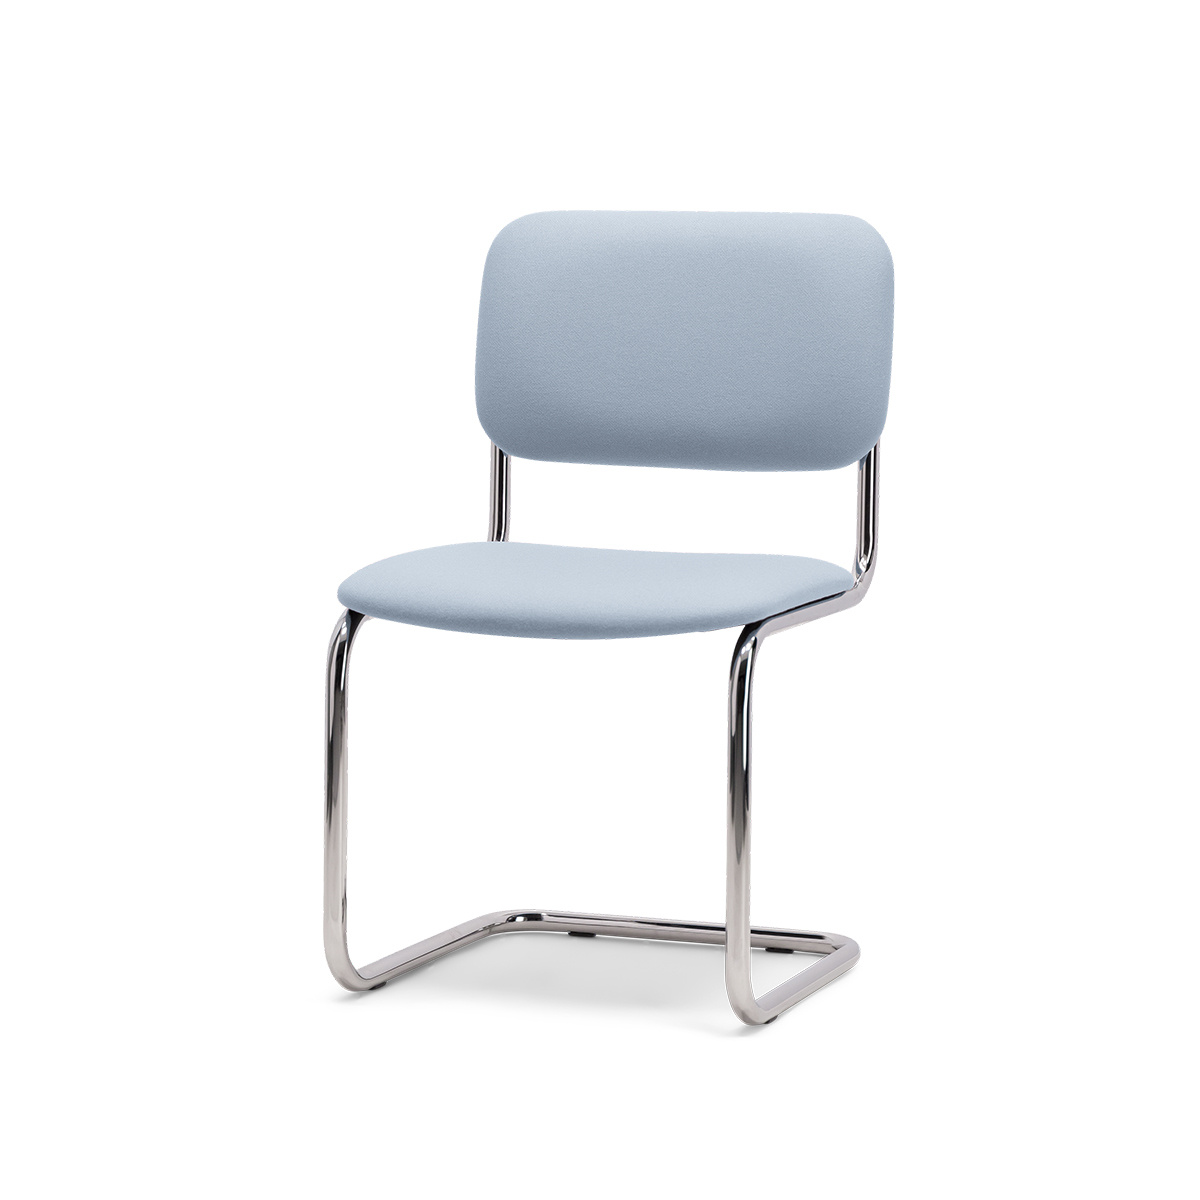 Astounding Chair With Pastel Blue Felt Seat Classica The Socialite Ncnpc Chair Design For Home Ncnpcorg